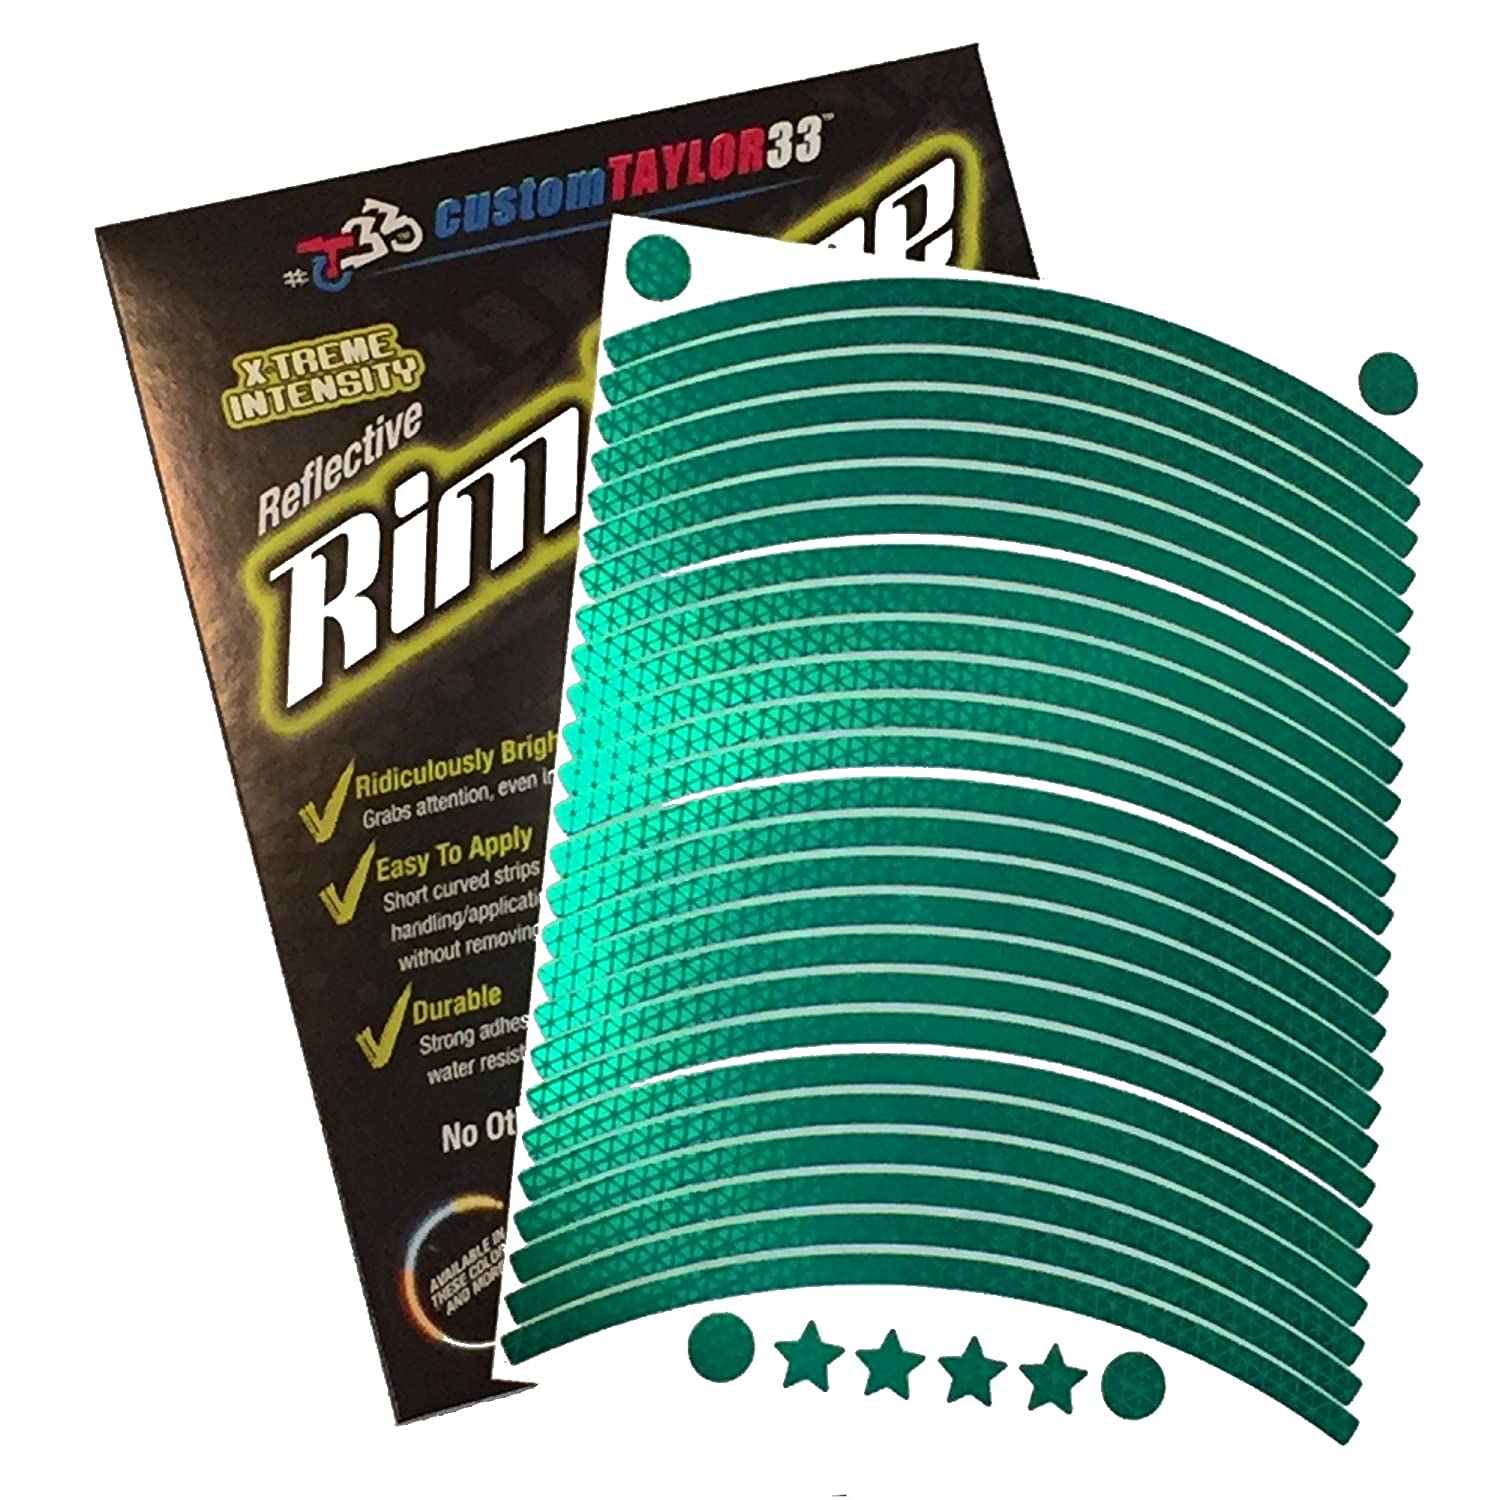 17 17 customTAYLOR33 CA-GreenRims-17 Rim Size for Most SportsBikes Must Select Your Rim Size All Vehicles Green High Intensity Grade Reflective Copyrighted Safety Rim Tapes Rim Size for Most SportsBikes